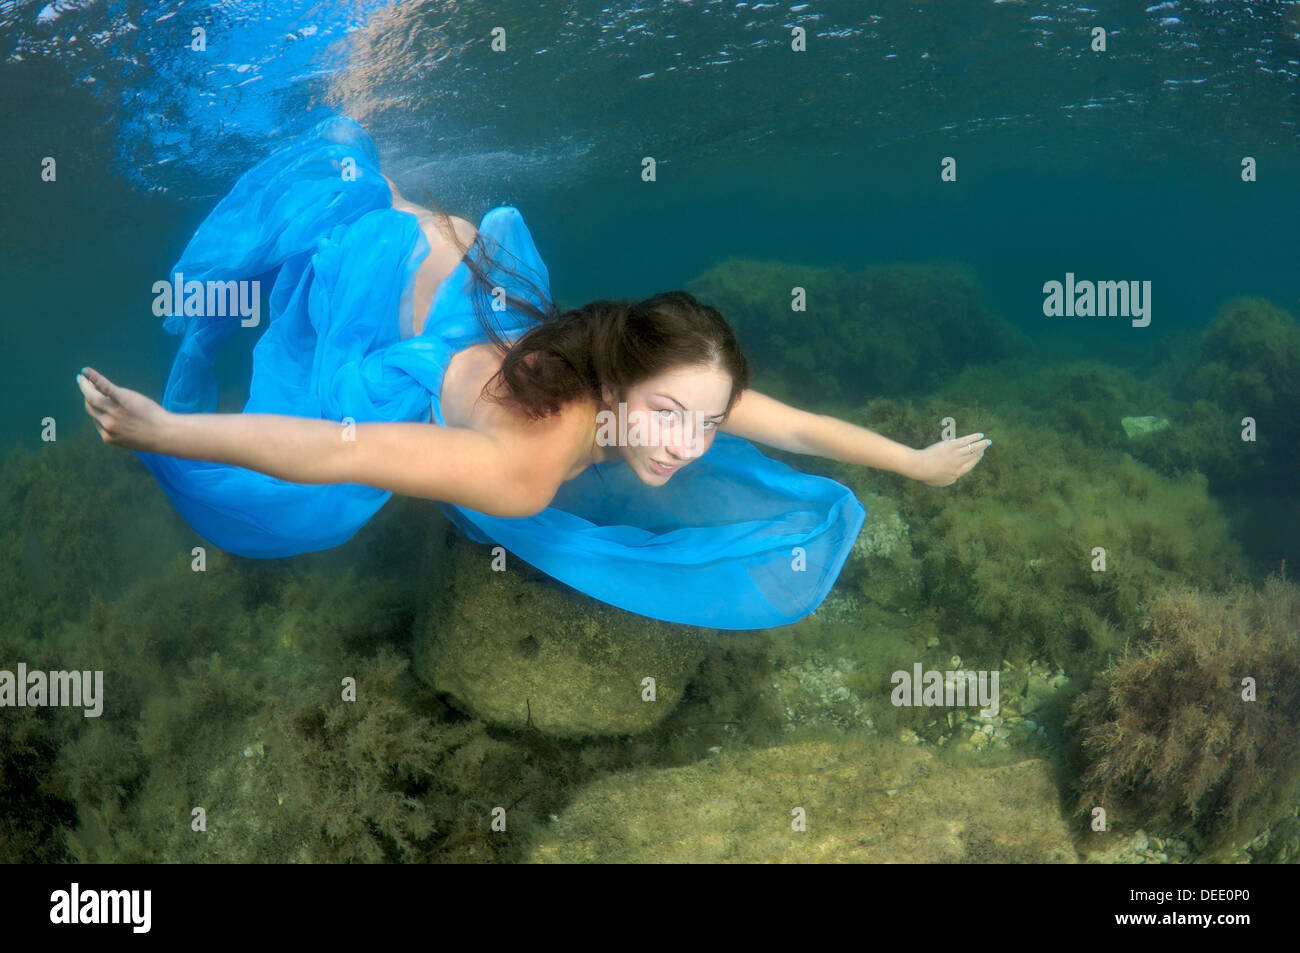 A young woman with long hair in a blue dress dives underwater in Black Sea - Stock Image